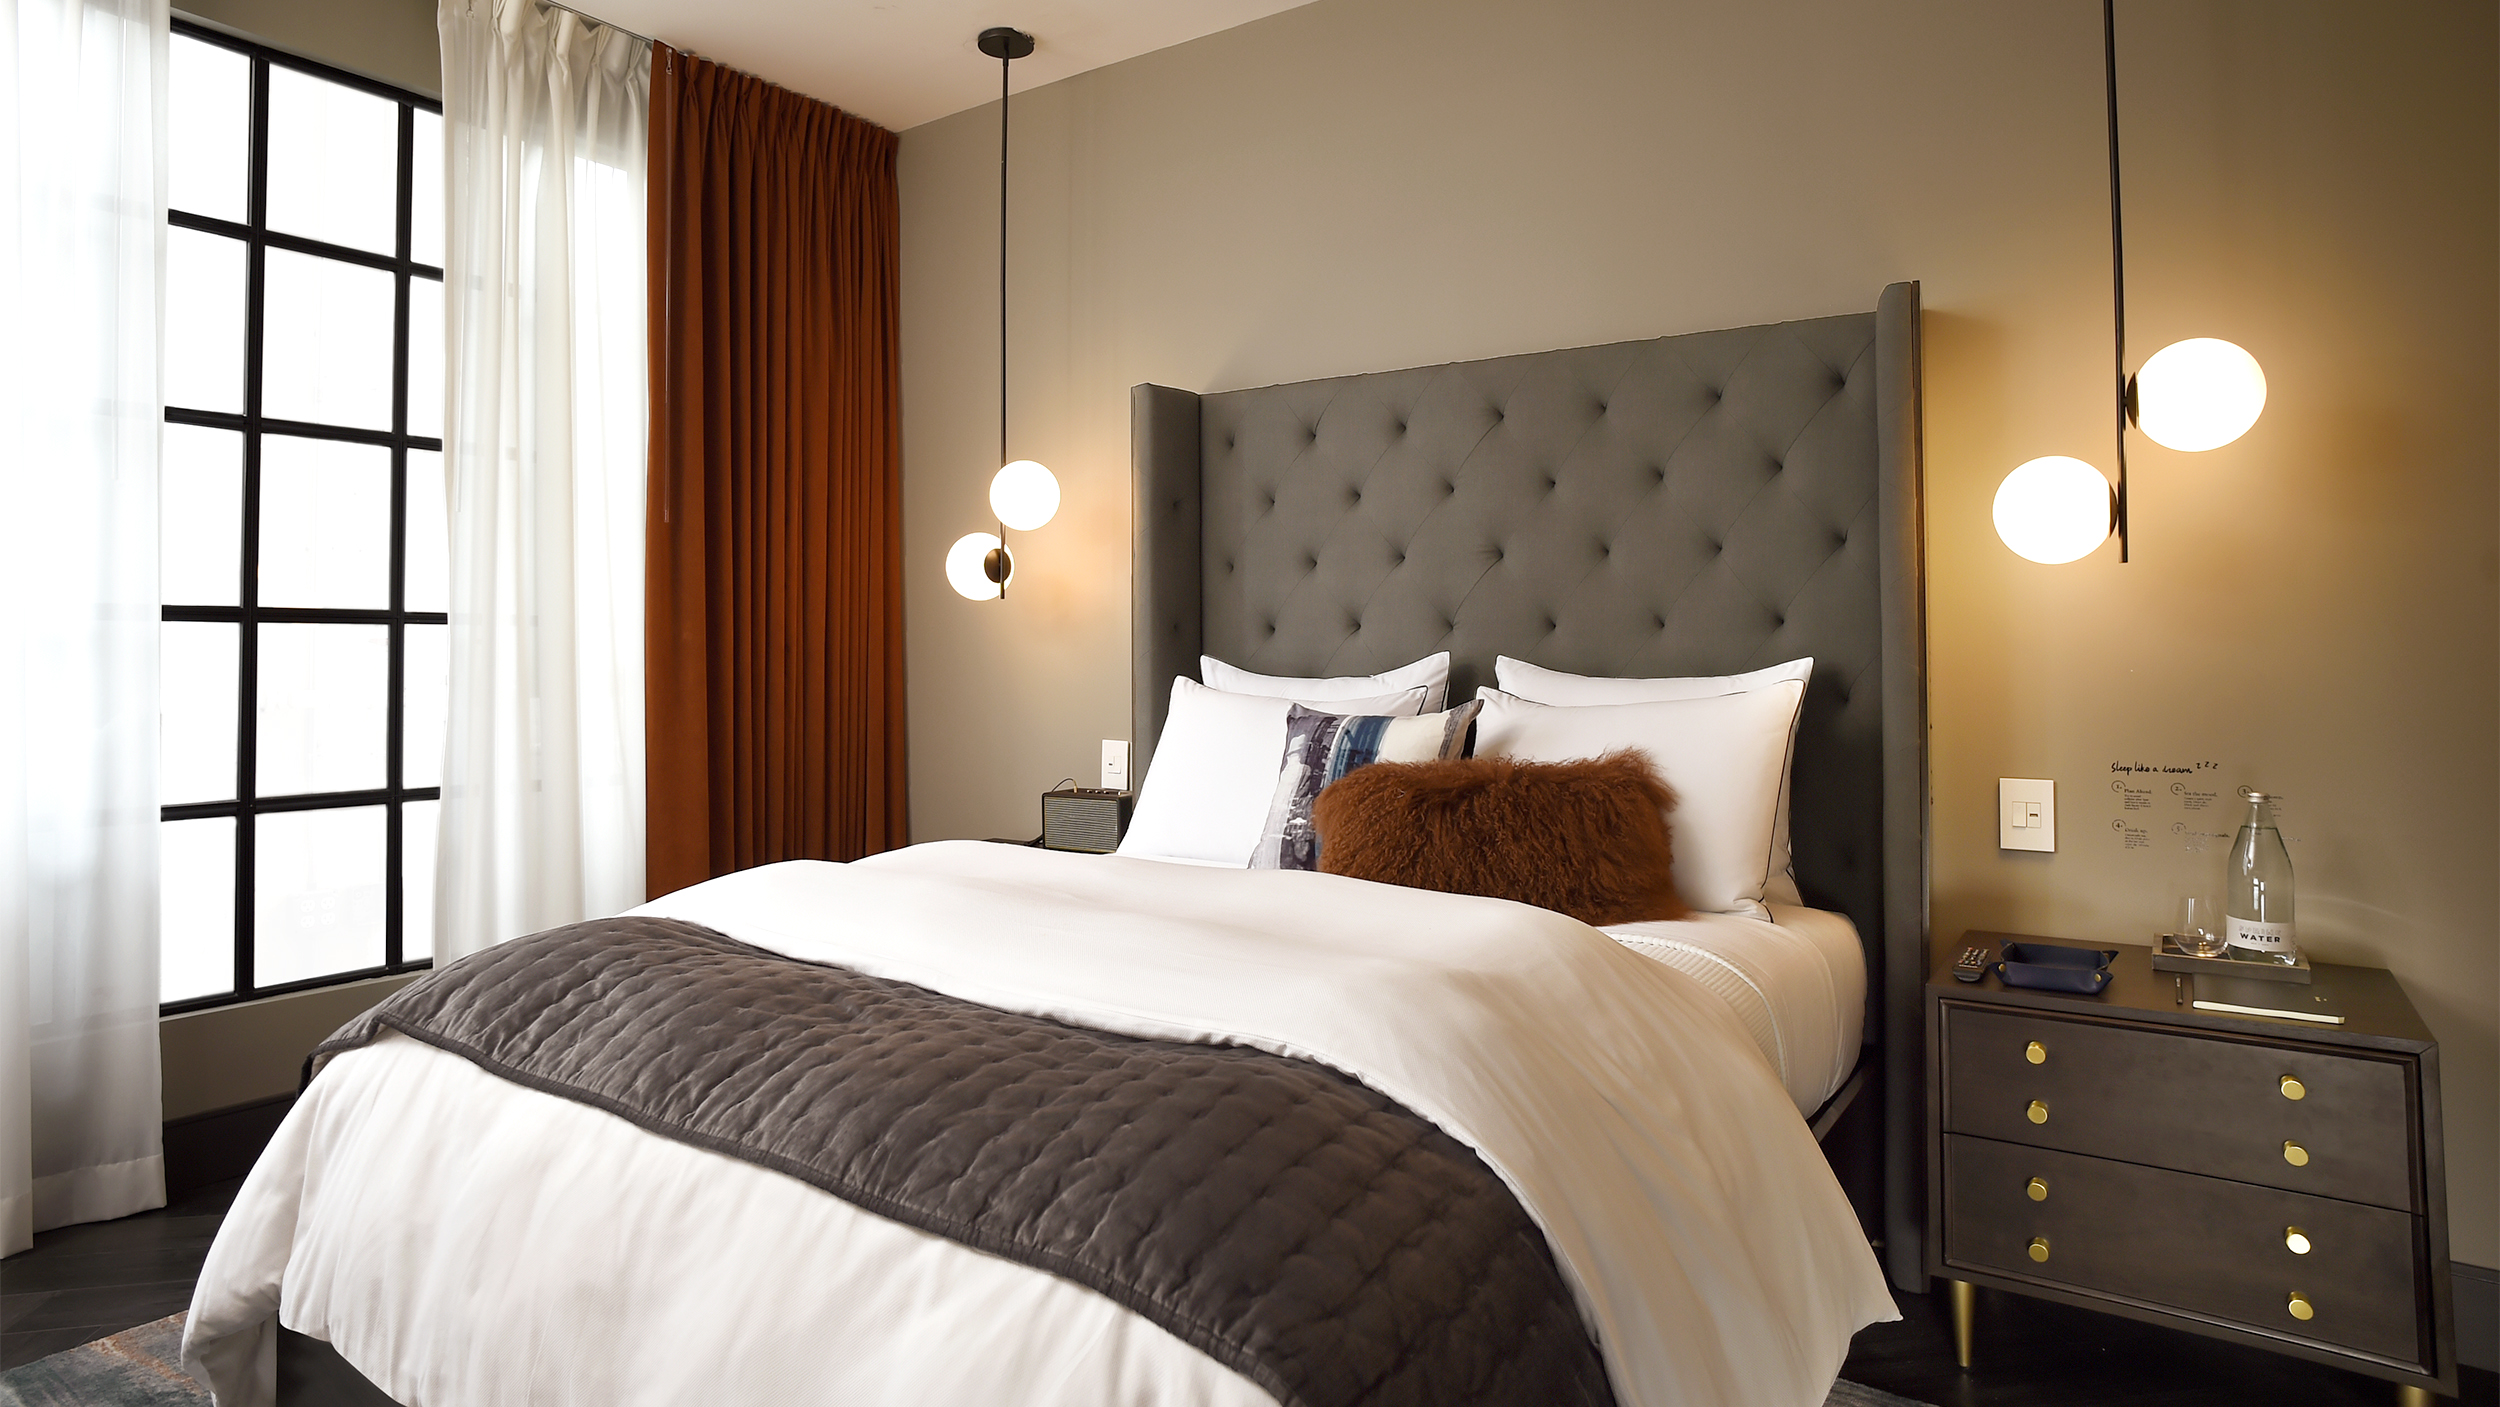 West Elm Launching New Hotel Chain